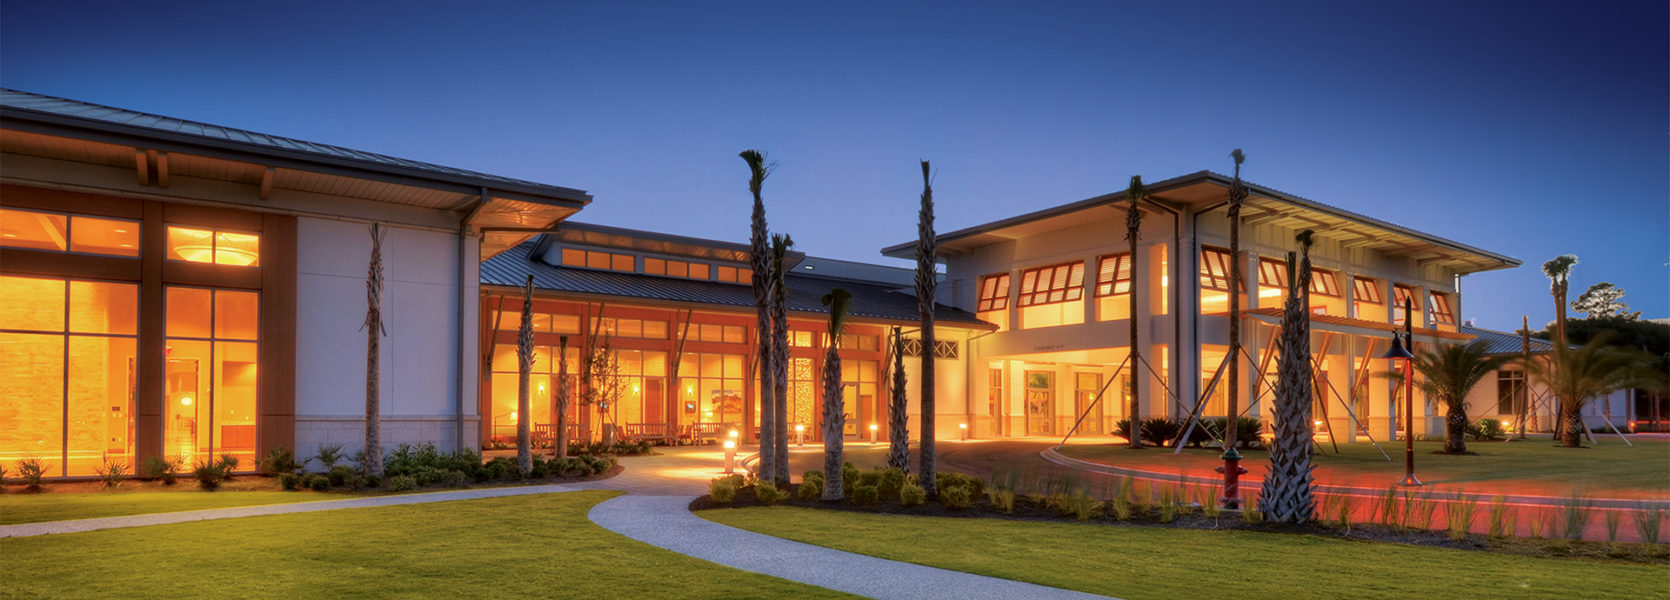 Jekyll Island Convention Center